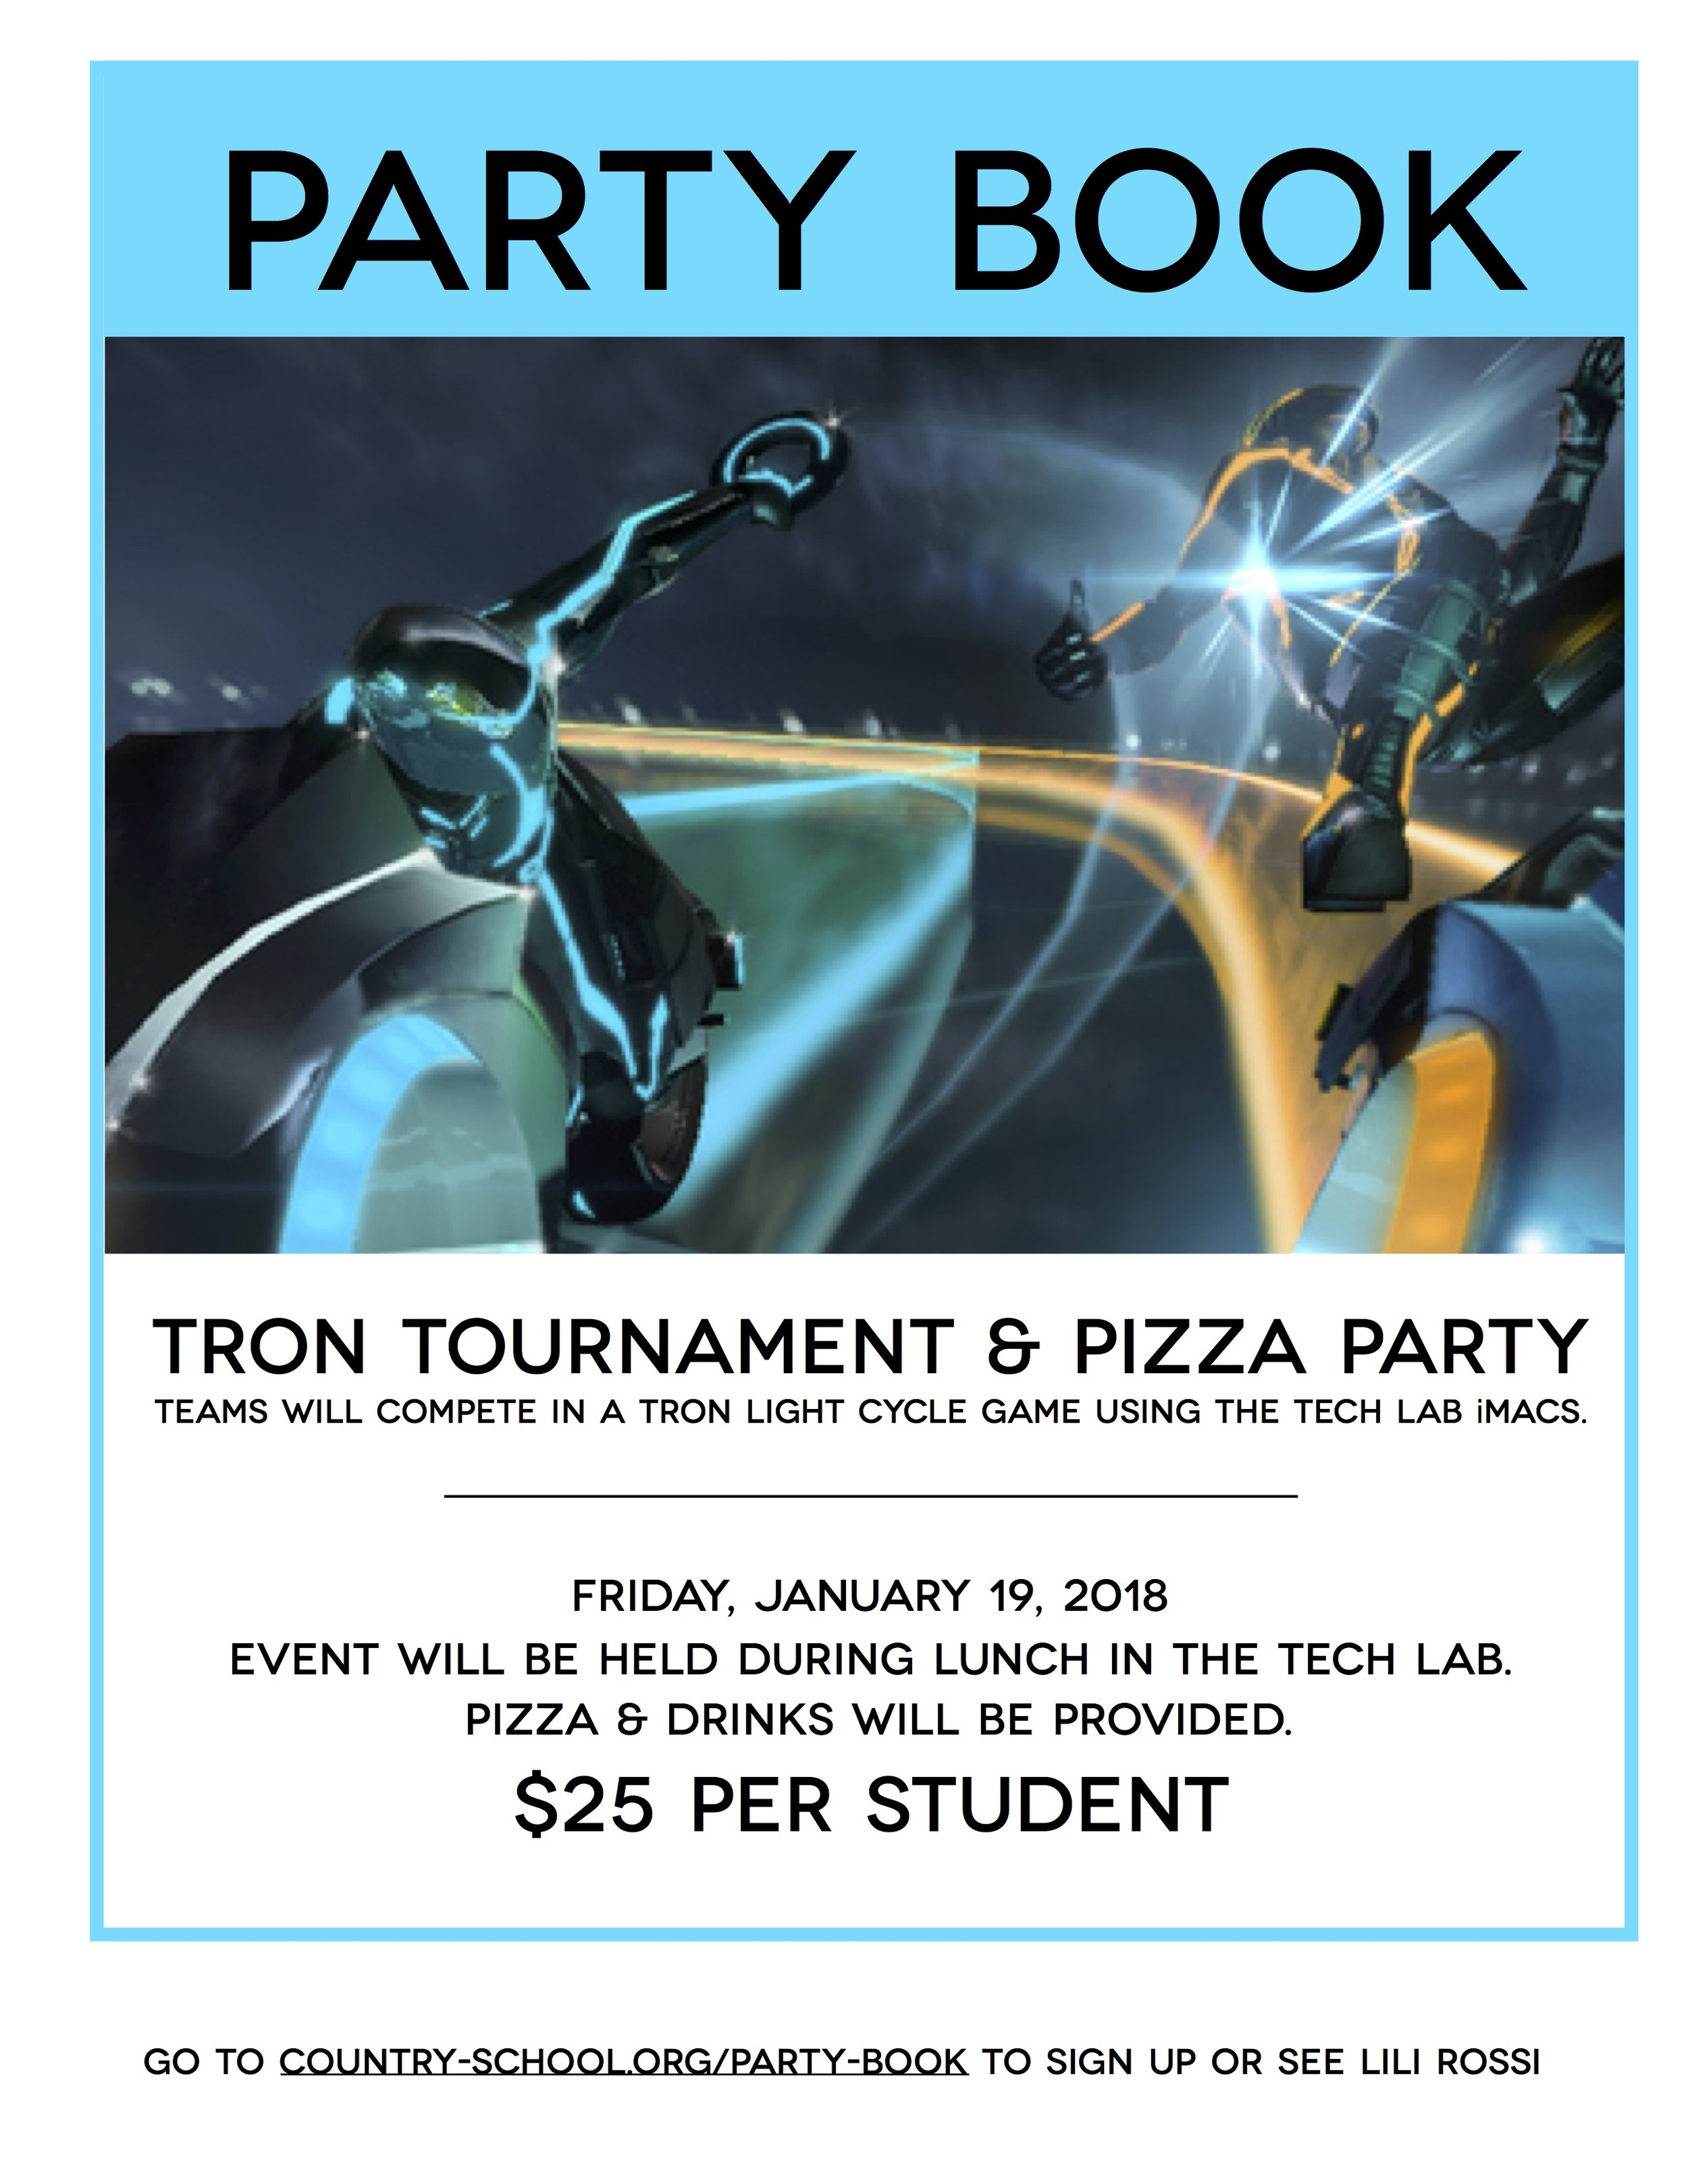 PartyBook_Tron_letter.jpg